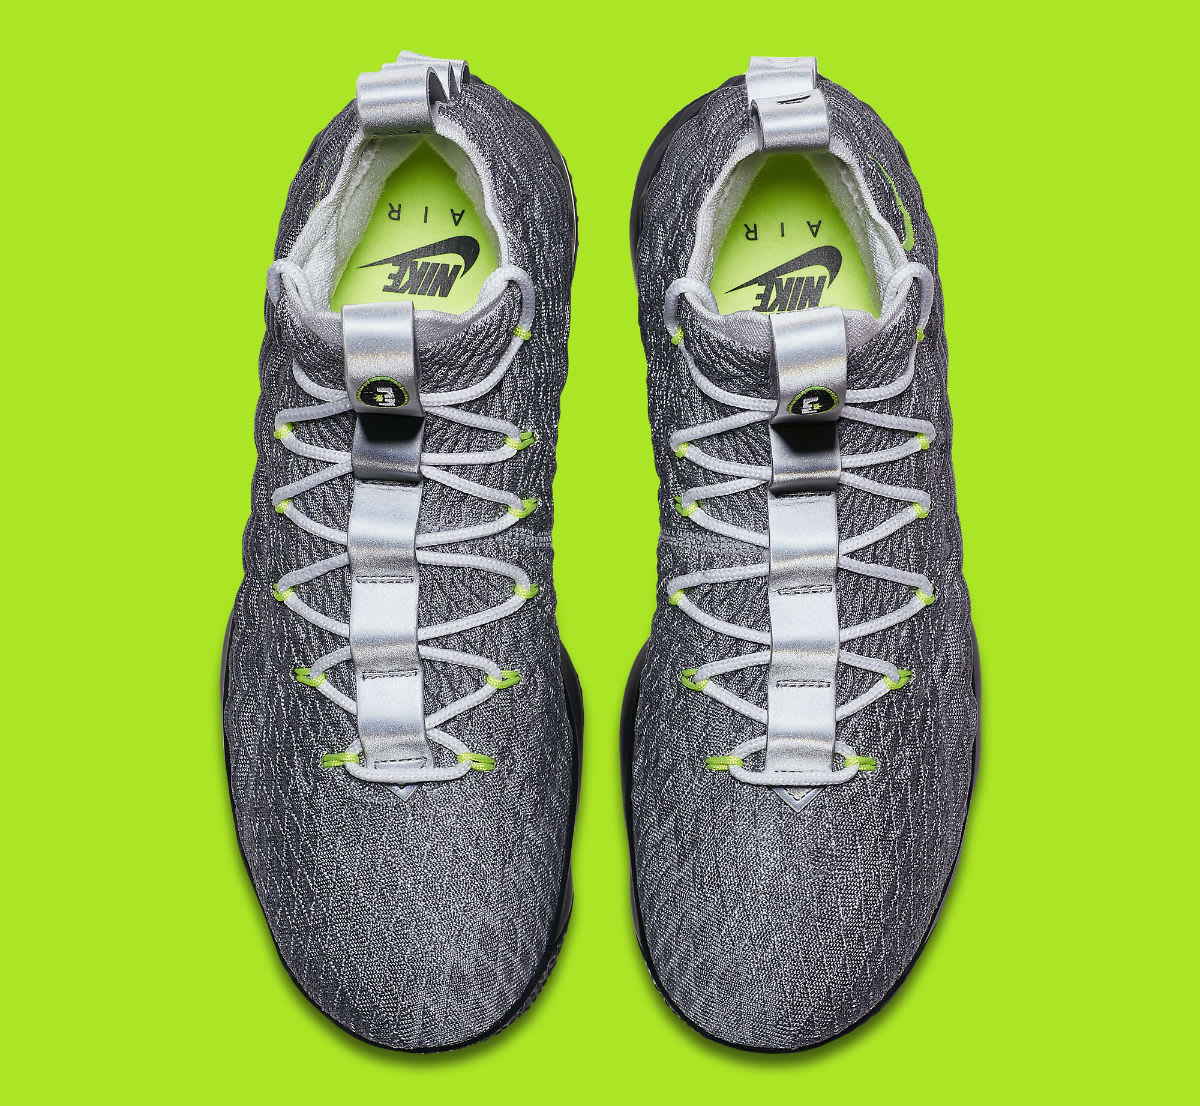 9ddf83ef5cc The sale of shoes Nike LeBron 15 Air Max 95 Neon Release Date AR4831-001 ...